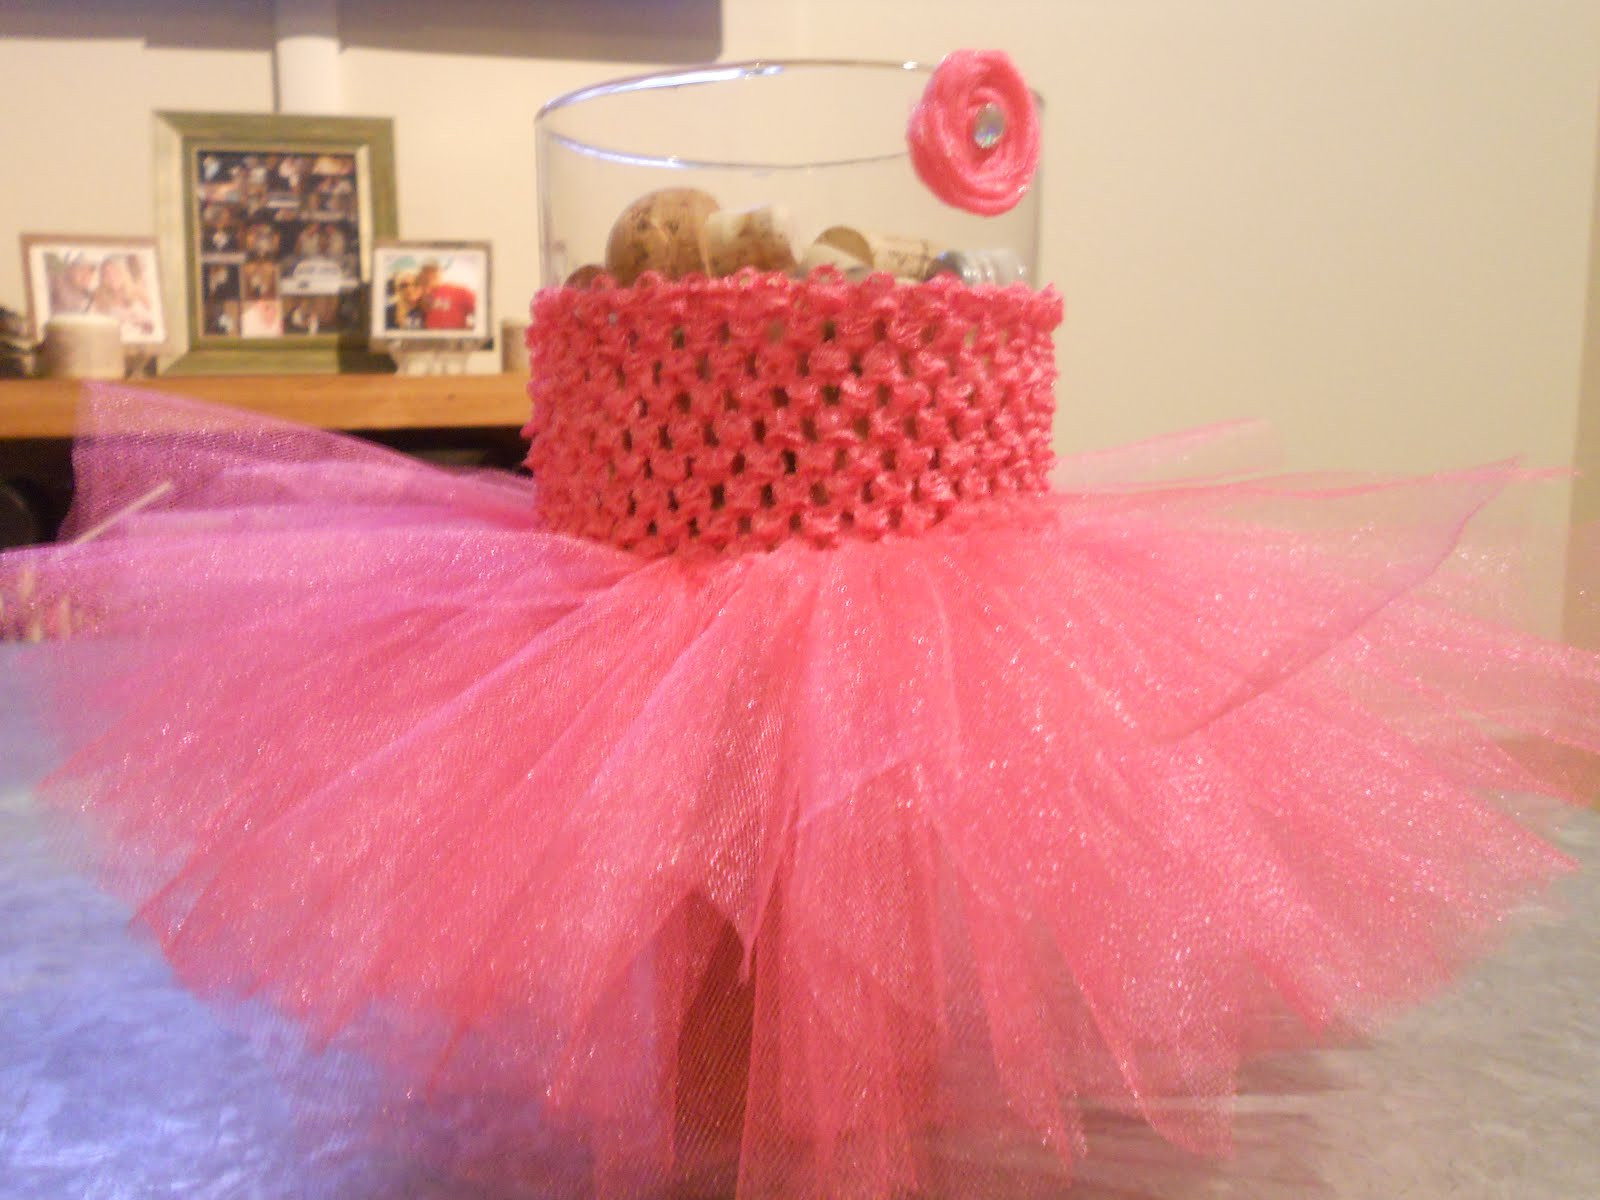 Best ideas about DIY Baby Tutu . Save or Pin Connoisseur of Creativity DIY Handmade No Sew Tutu Now.